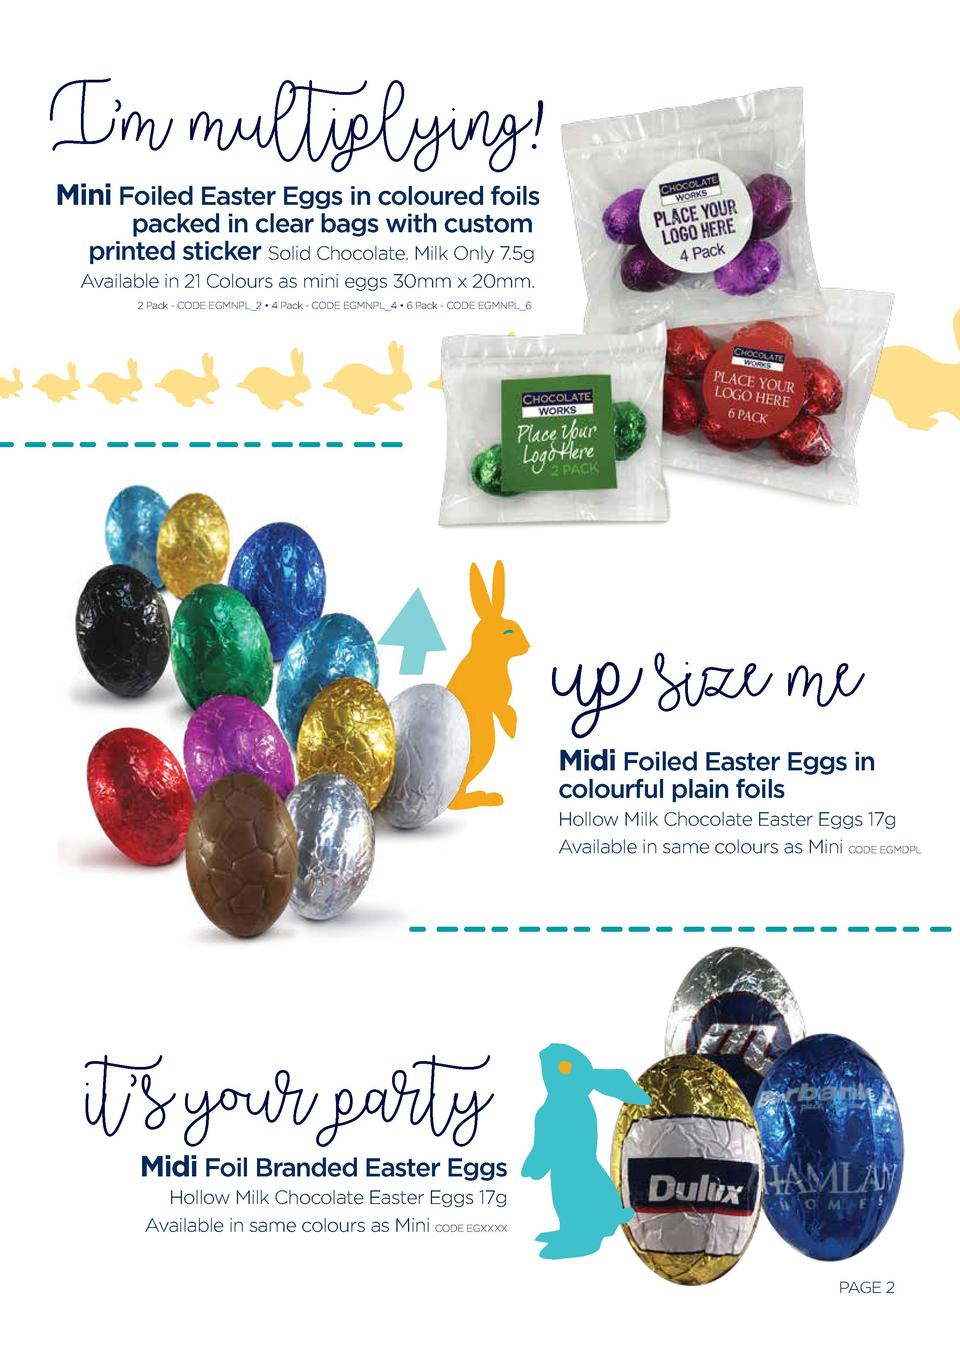 I   m multiplying  Mini Foiled Easter Eggs in coloured foils packed in clear bags with custom printed sticker Solid Chocol...